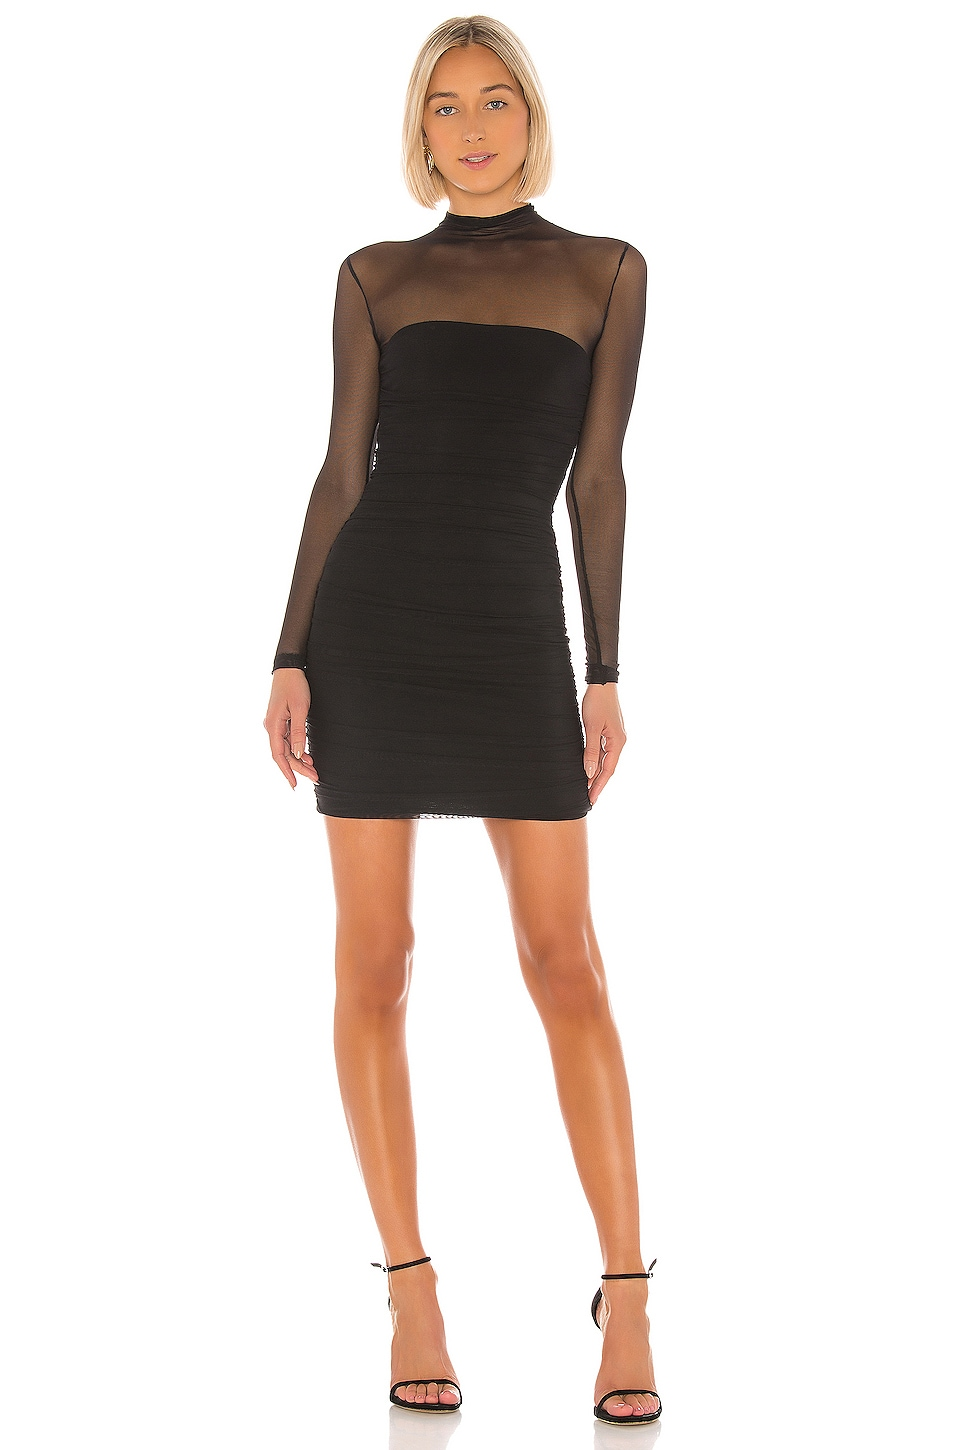 Nookie Poison Long Sleeve Mini Dress in Black